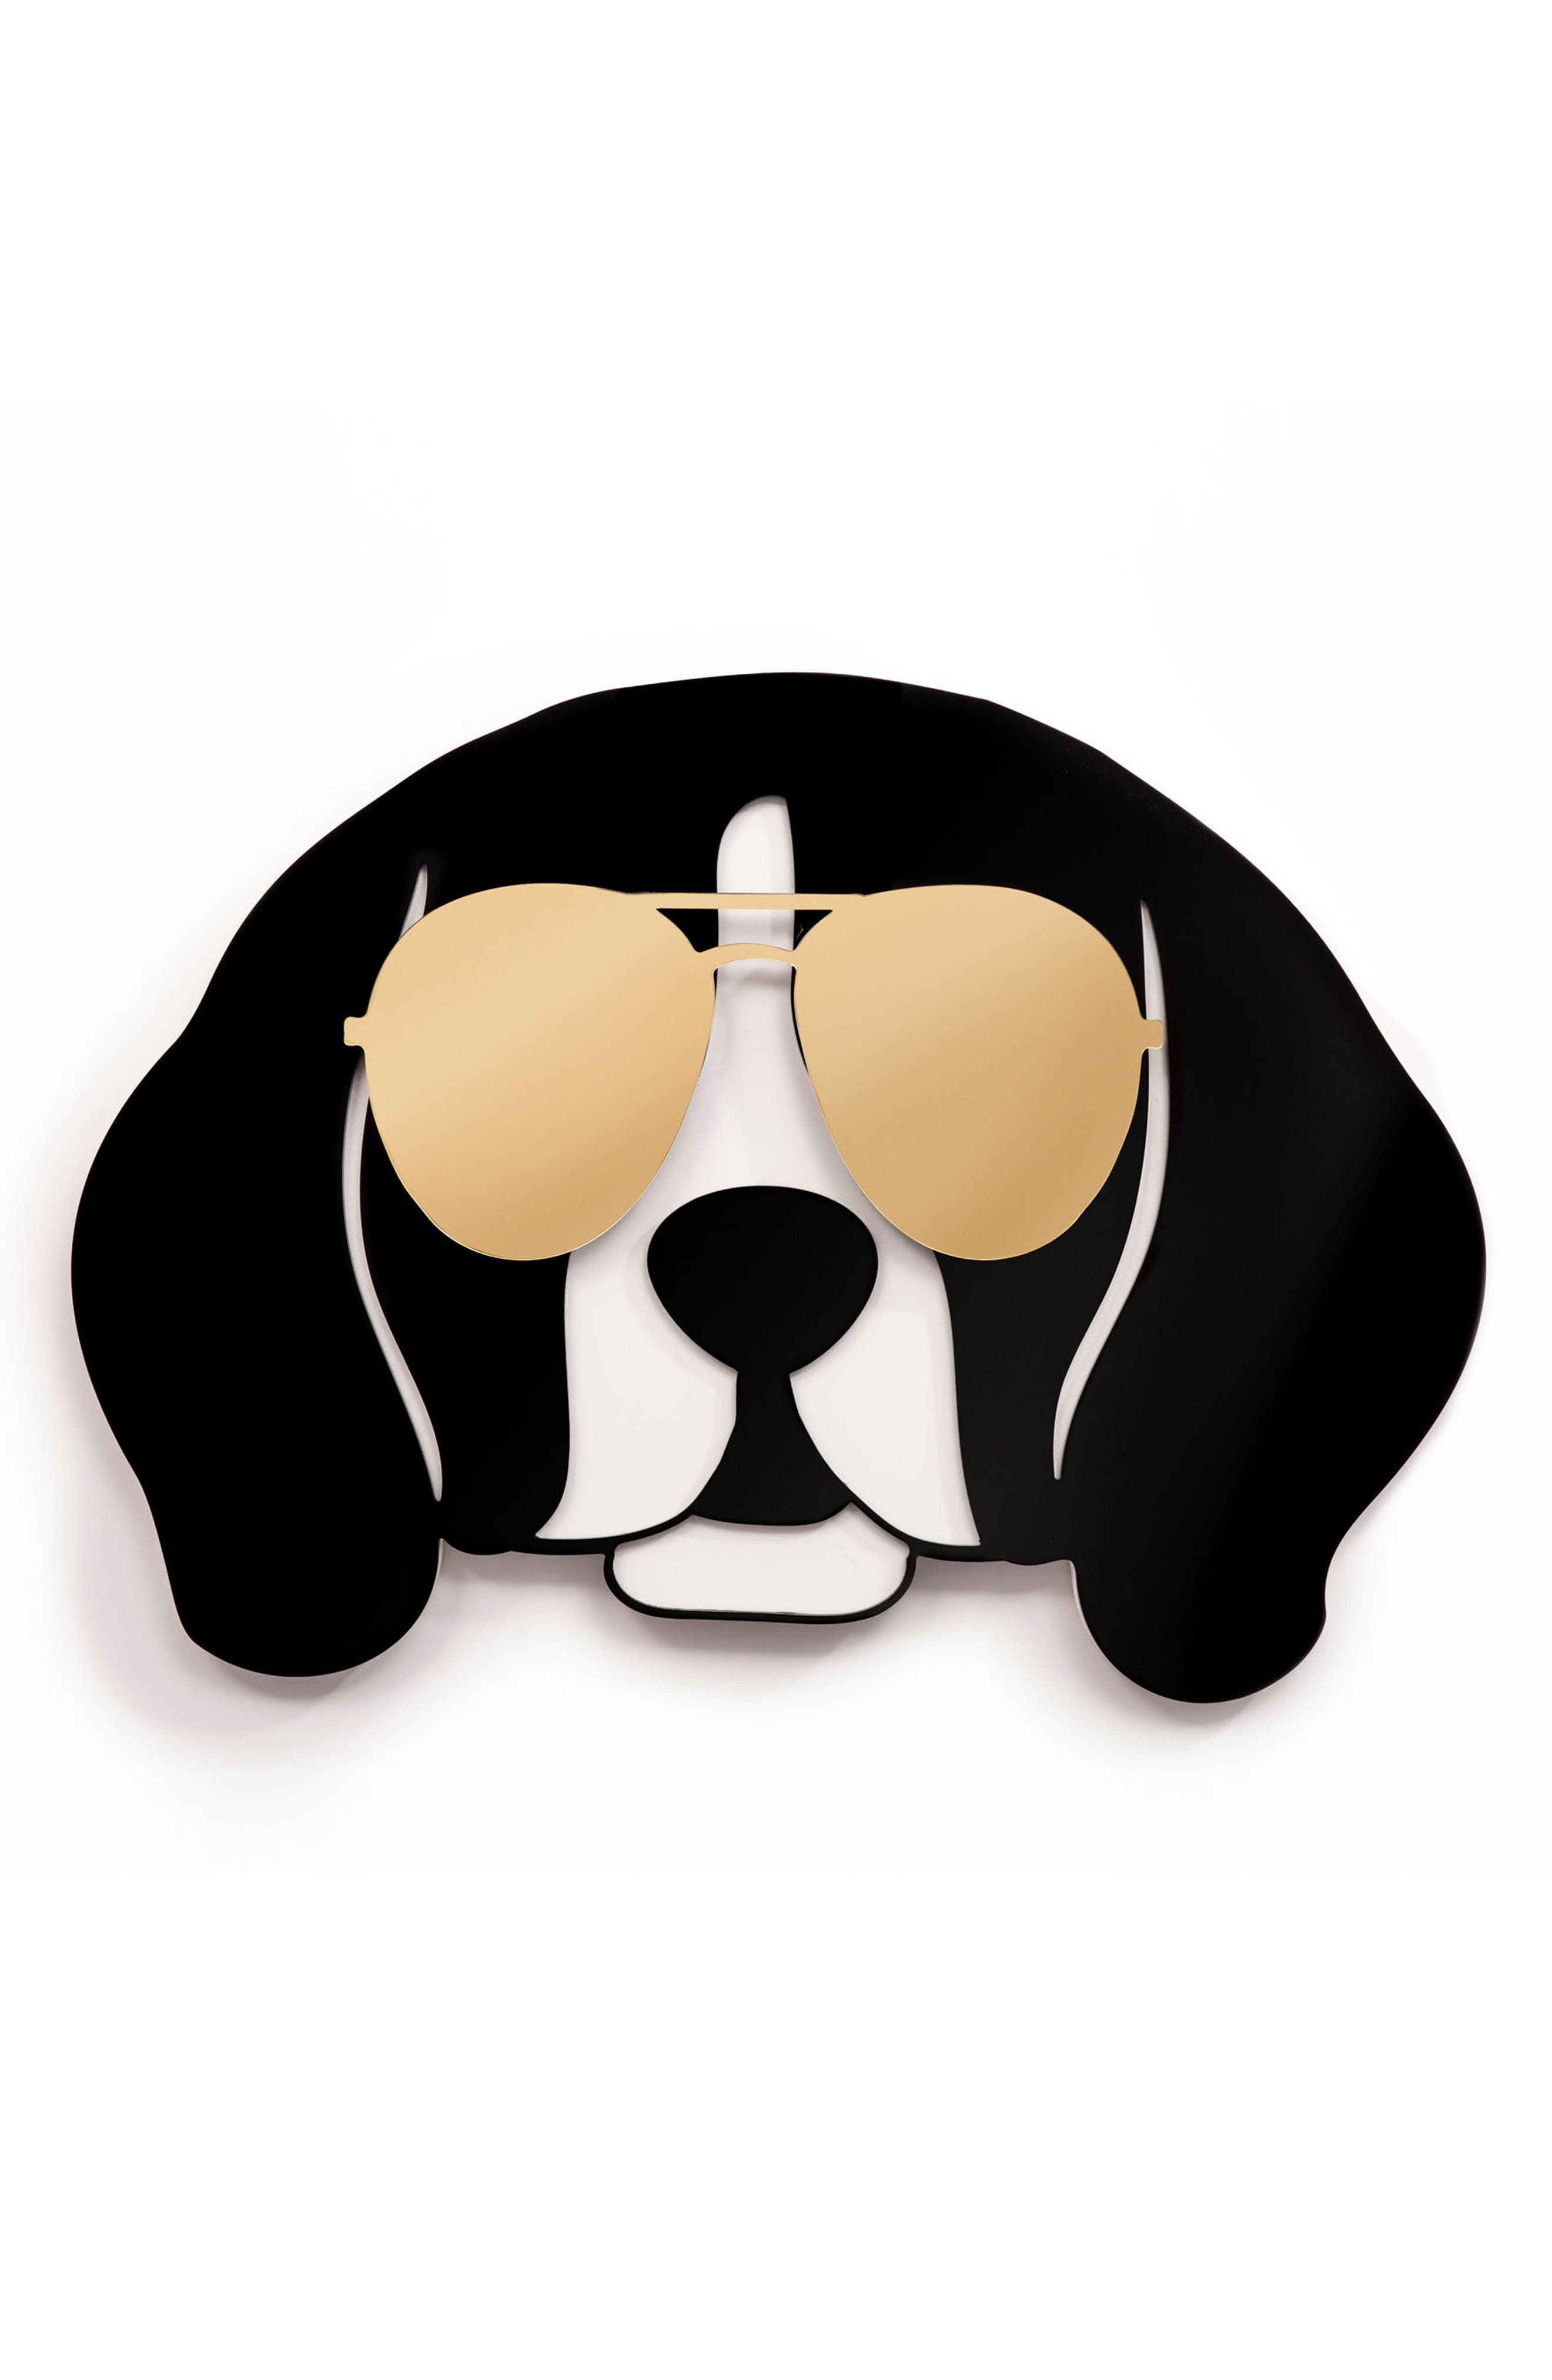 Cool Beagle Wall Art, Main, color, GOLD BLACK AND WHITE